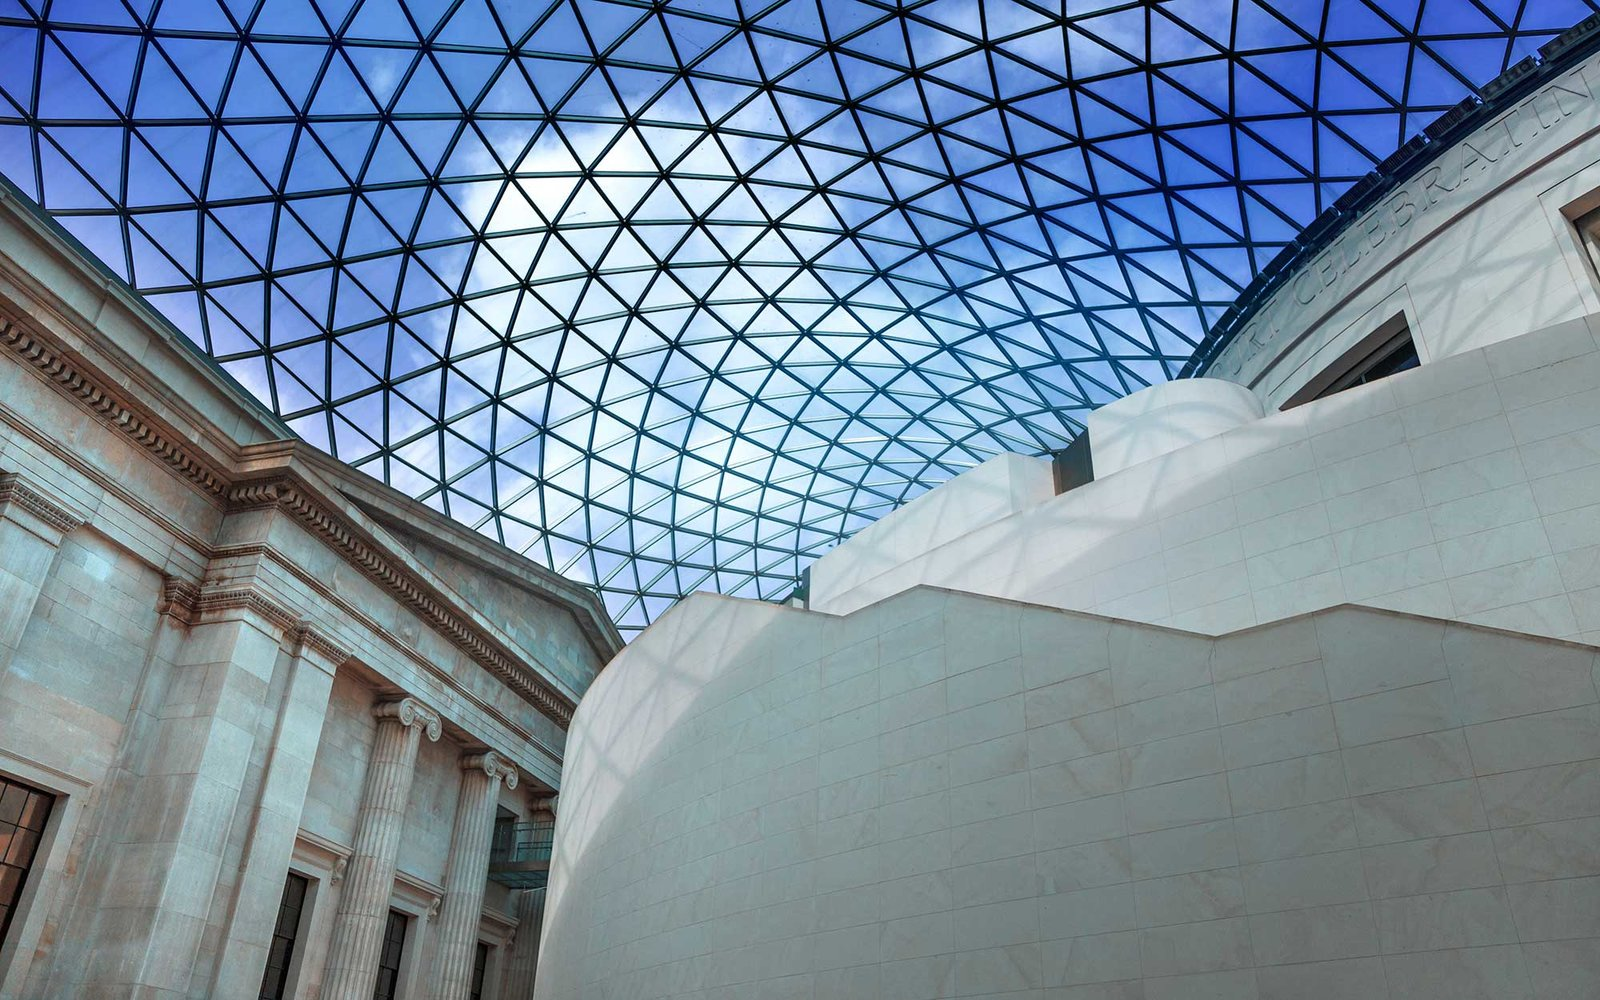 Queen Elizabeth II Great Court, British Museum